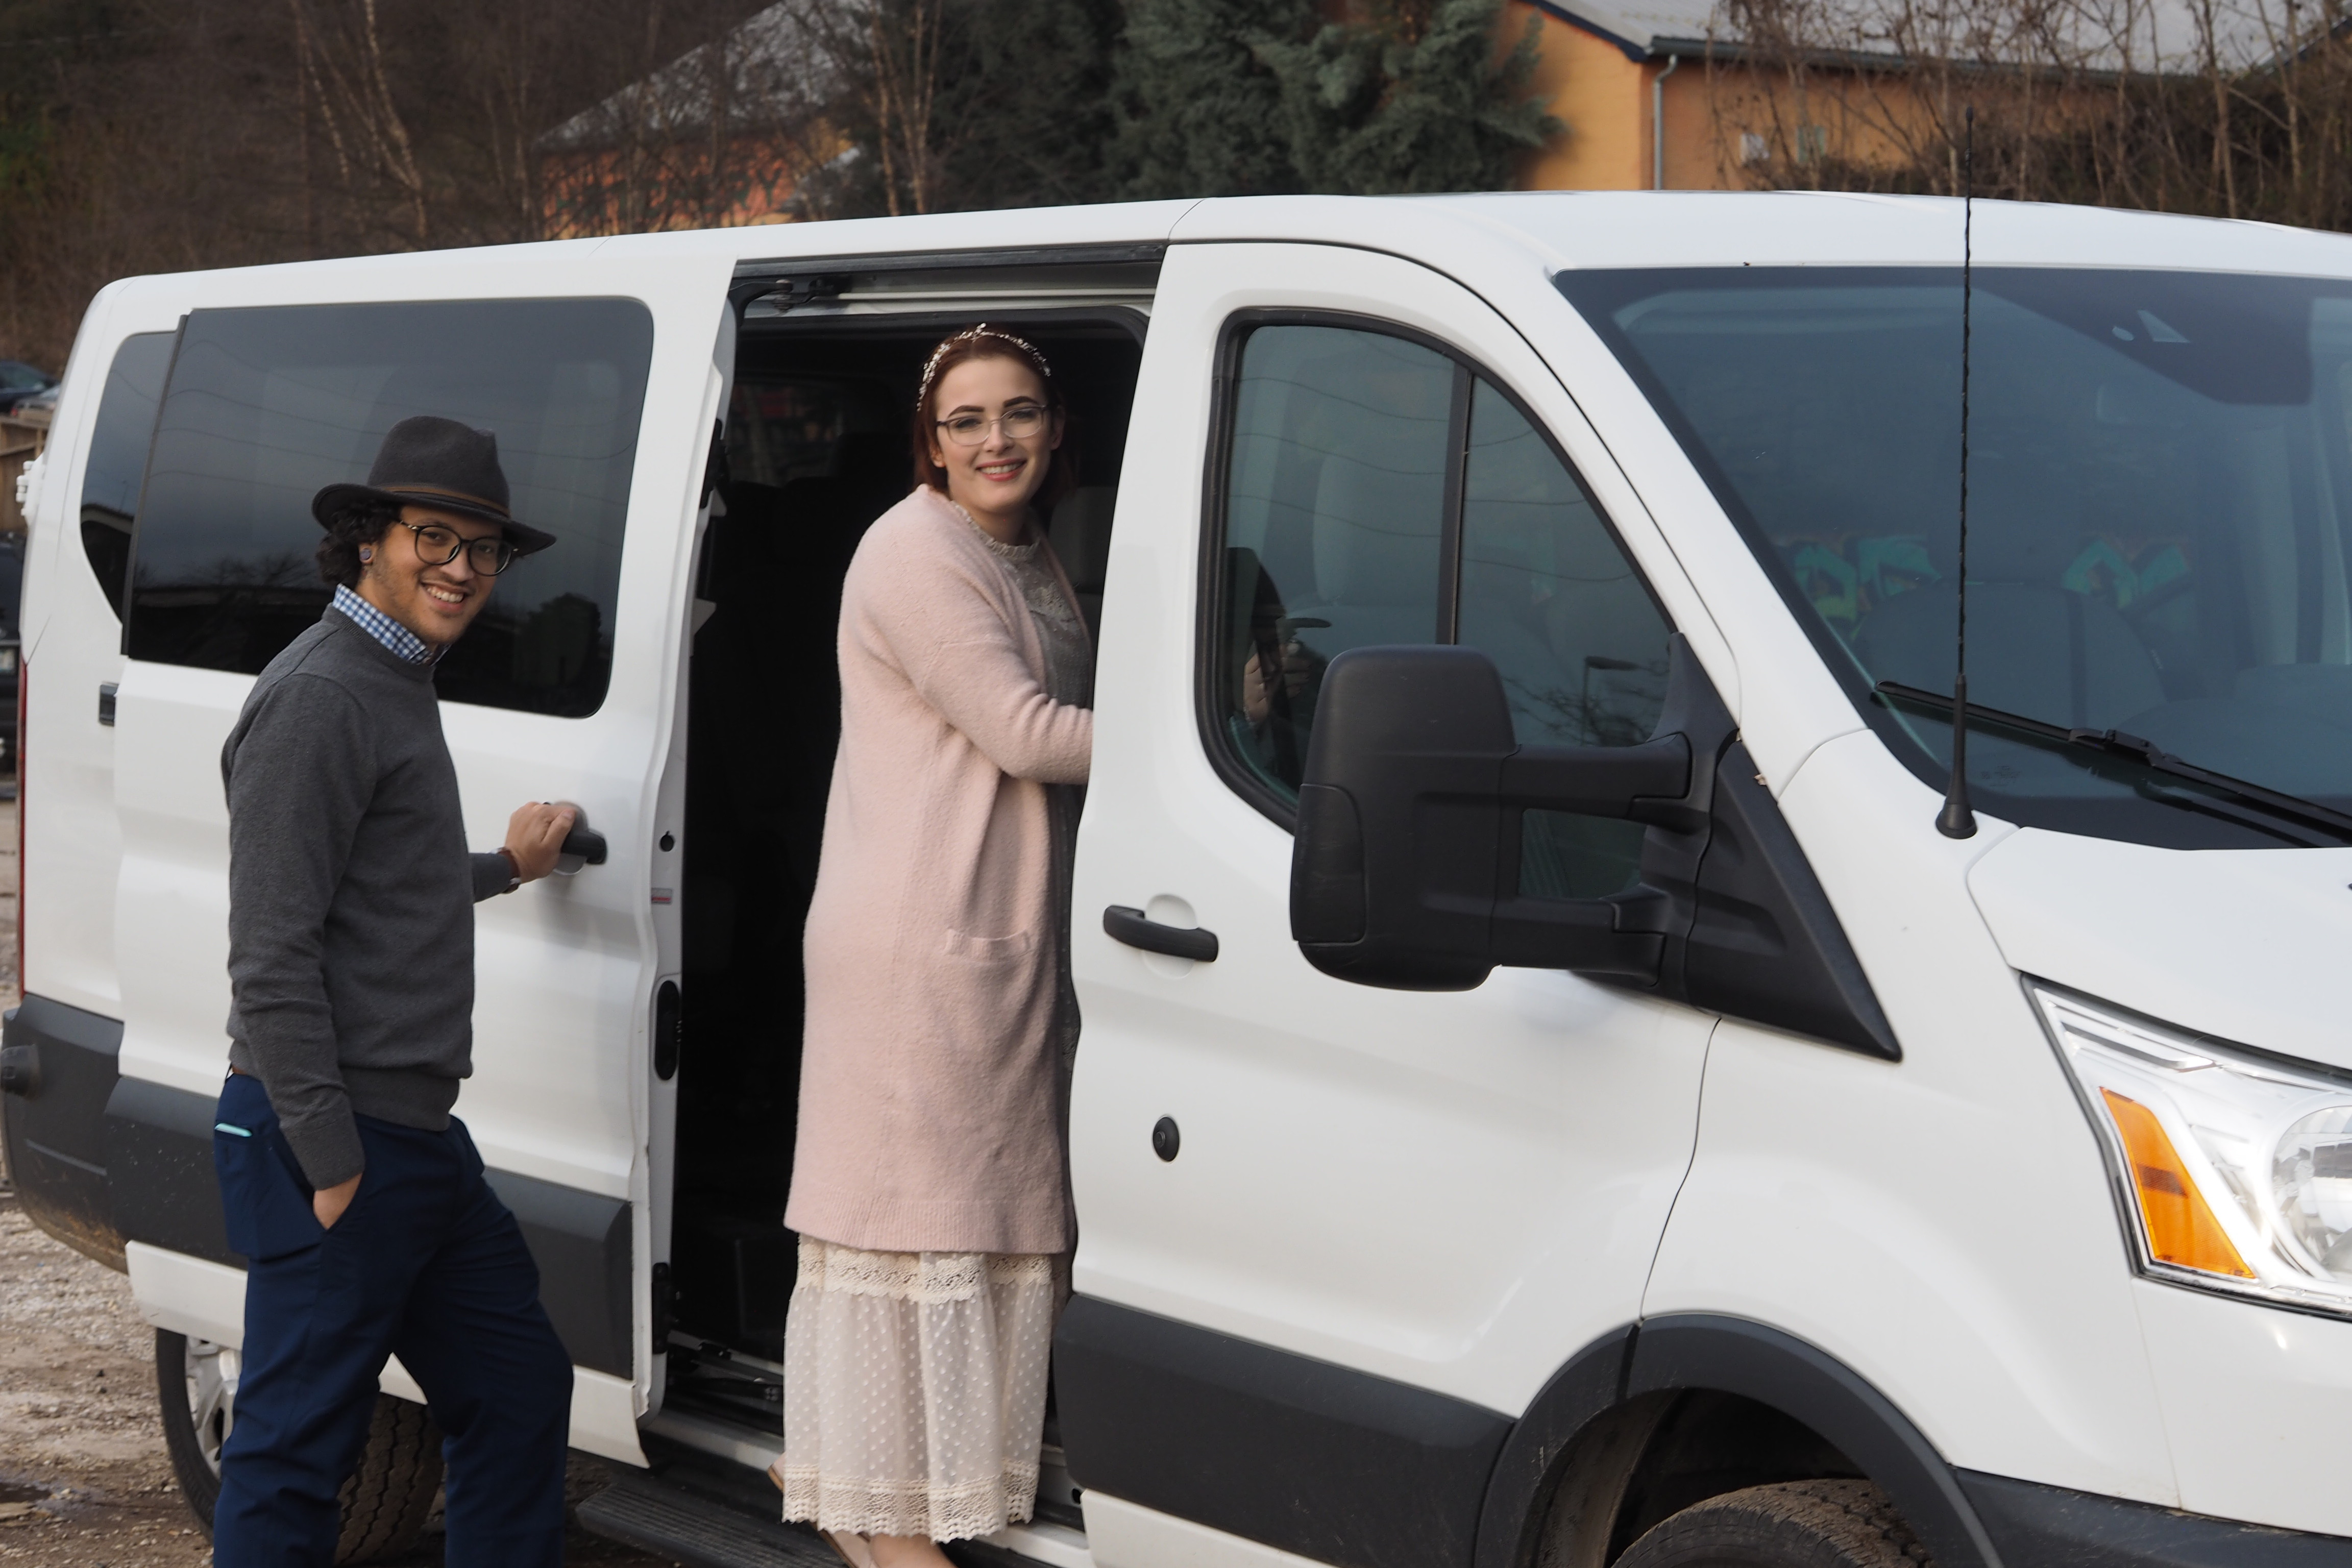 Full Day Chauffeur, Tour Up to 13 Guests